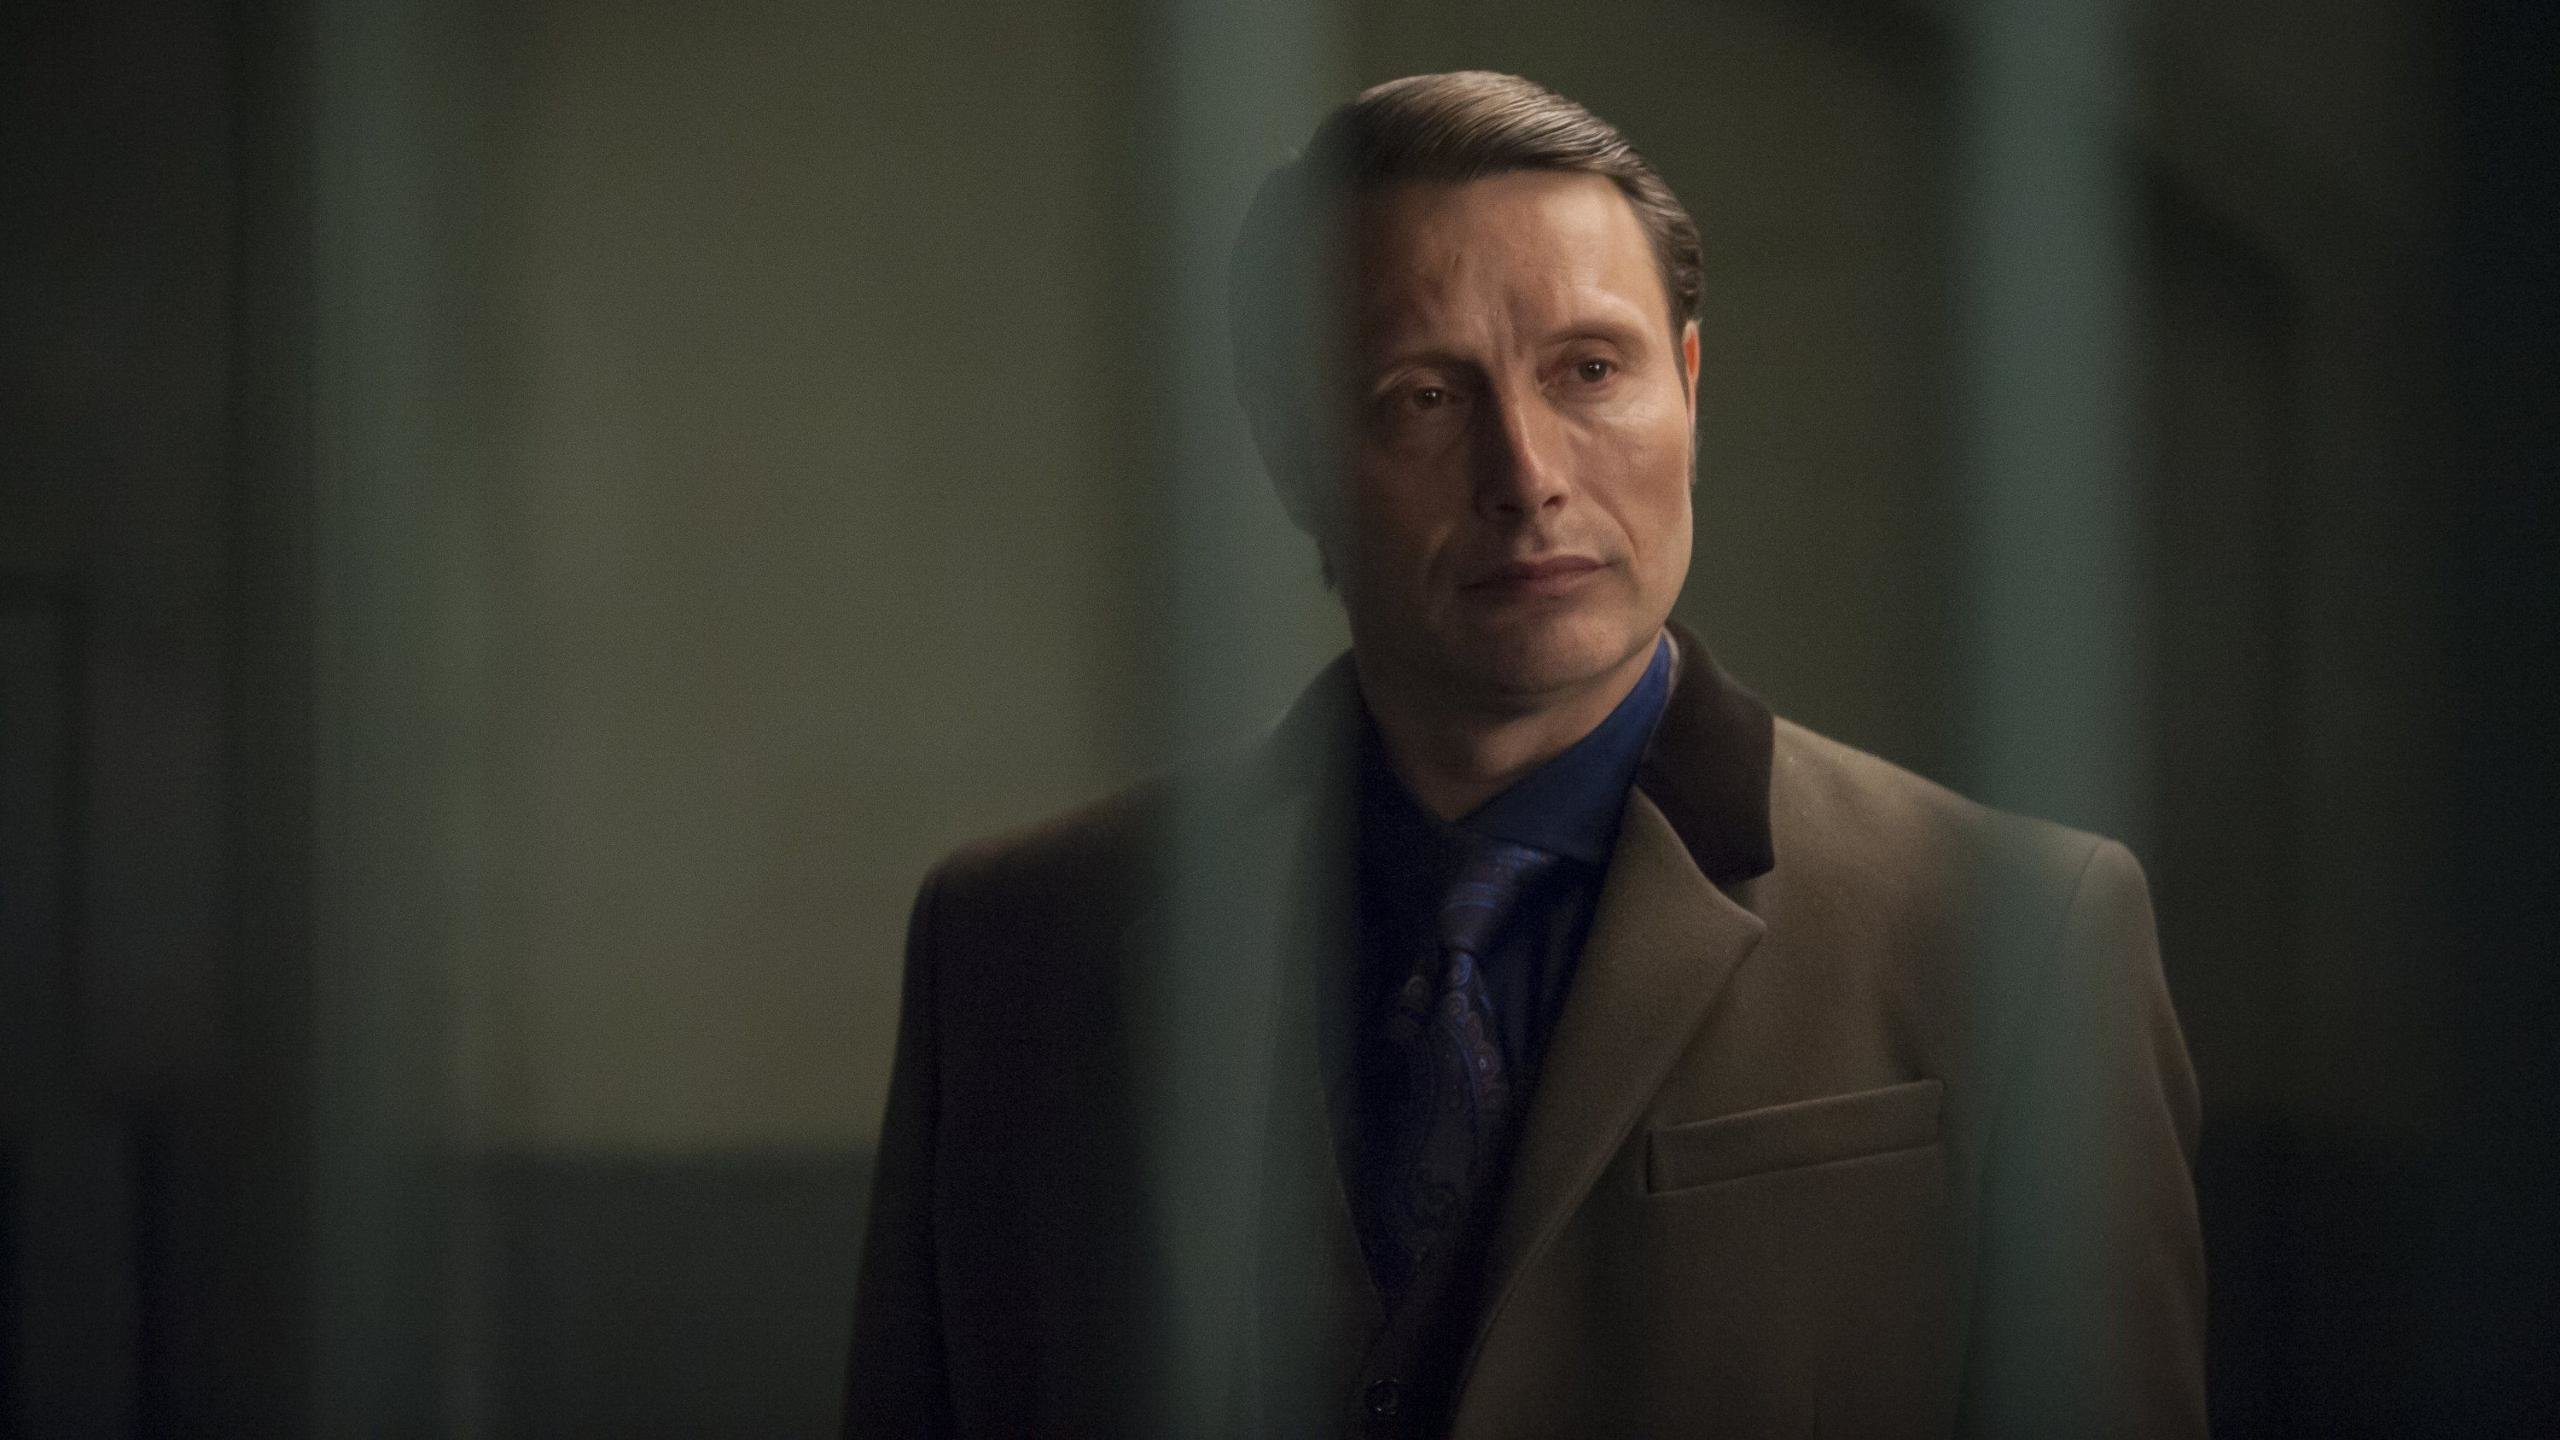 Best Hannibal Wallpaper ID8888 For High Resolution Hd 2560x1440 PC